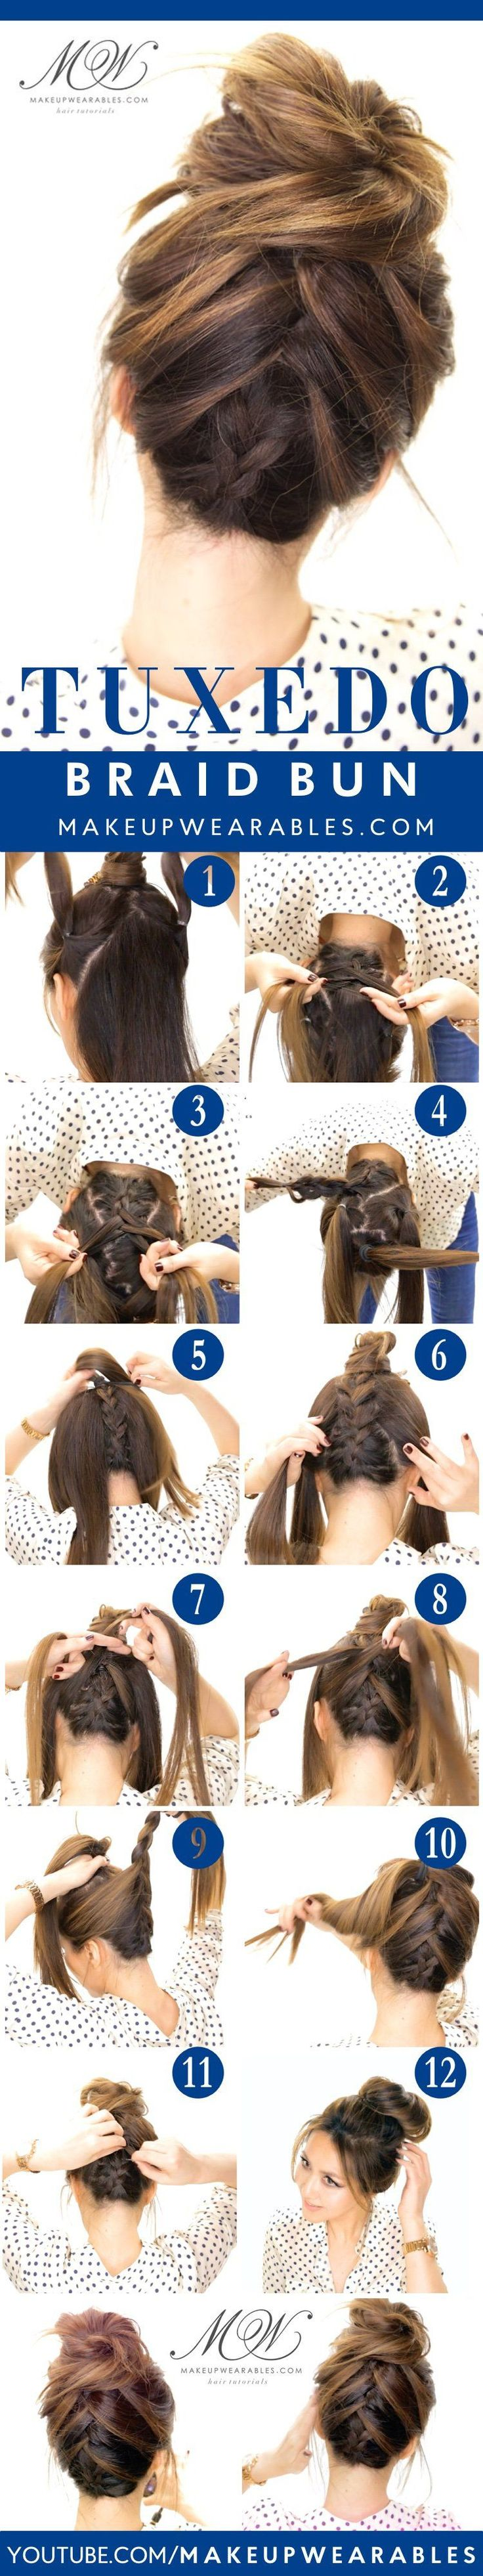 Tuxedo Braid Bun Tutorial | 5 Messy Updos for Long Hair, check it out at www.ozspecials.com